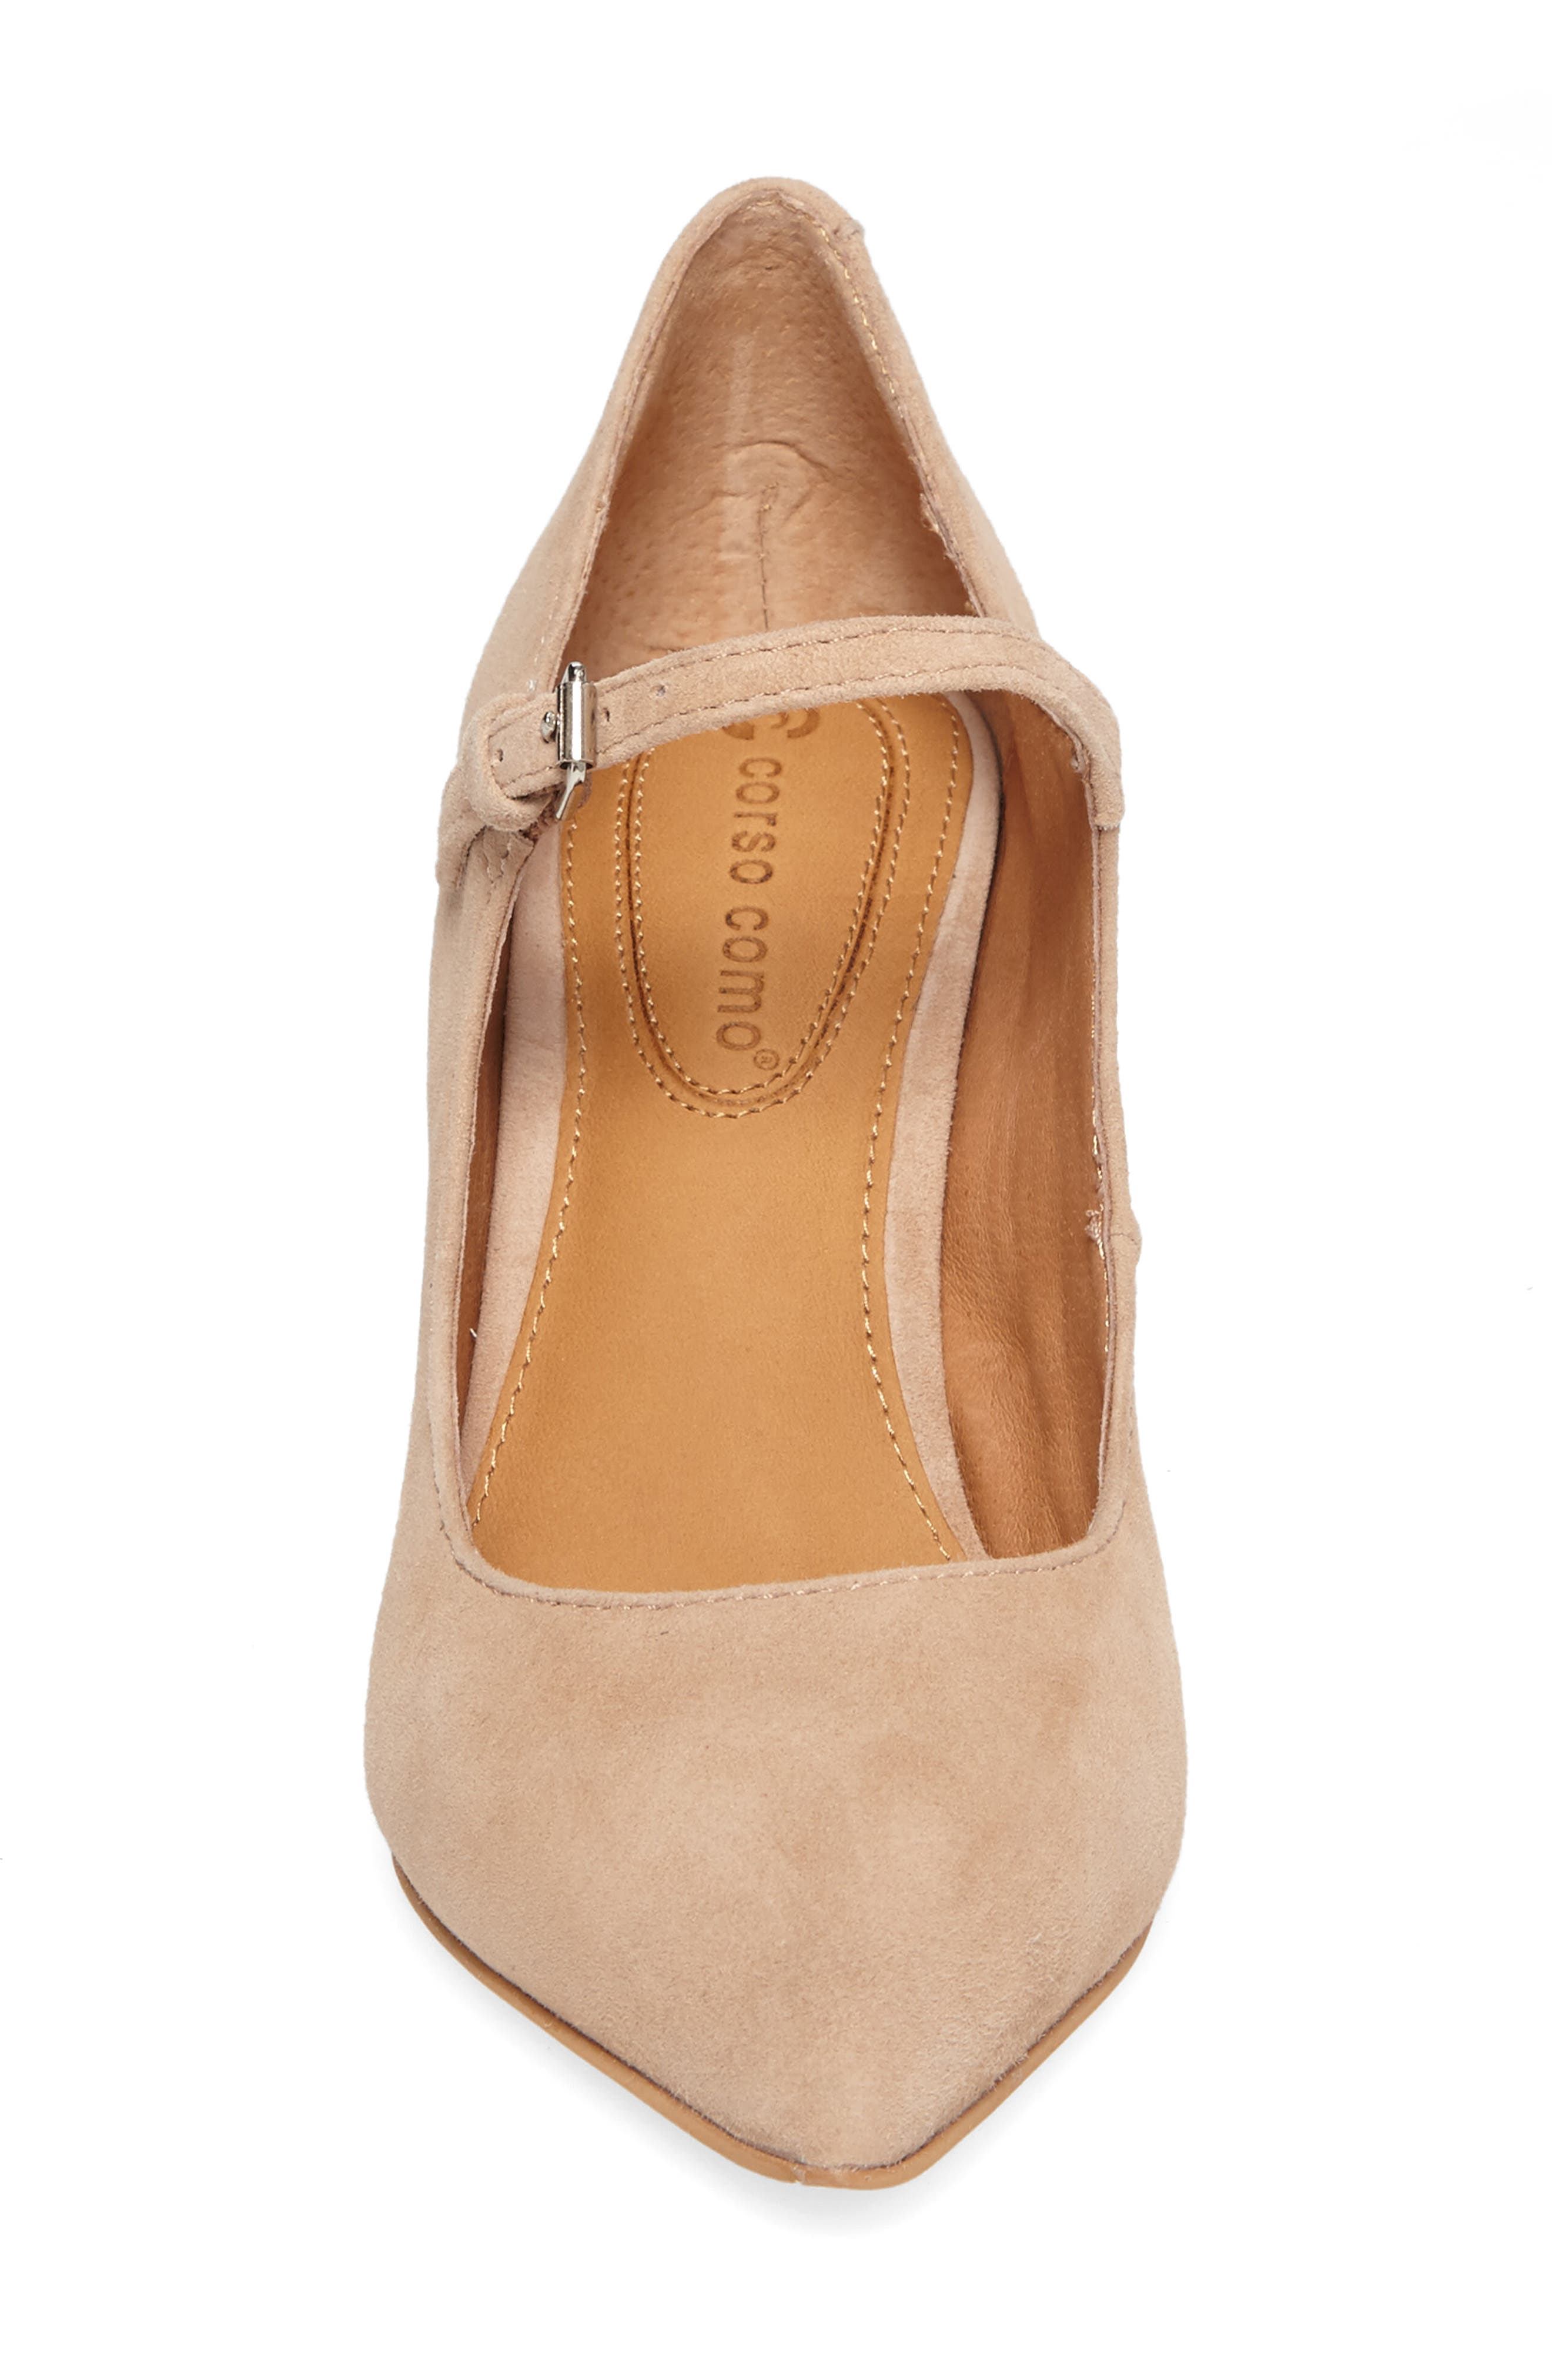 Coy Pointy Toe Pump,                             Alternate thumbnail 4, color,                             Dark Nude Suede